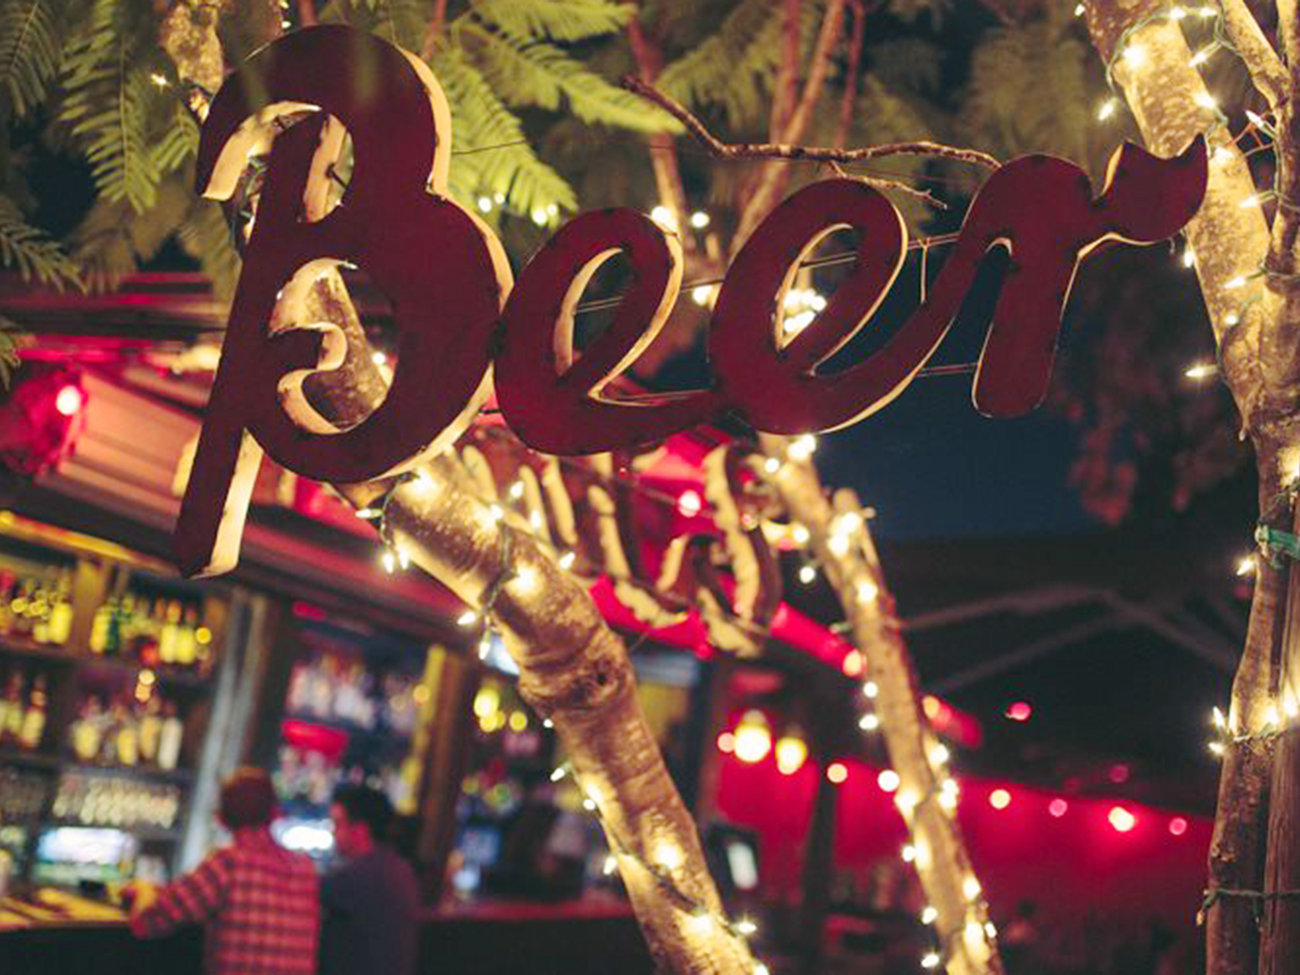 Boheme Bar in Houston